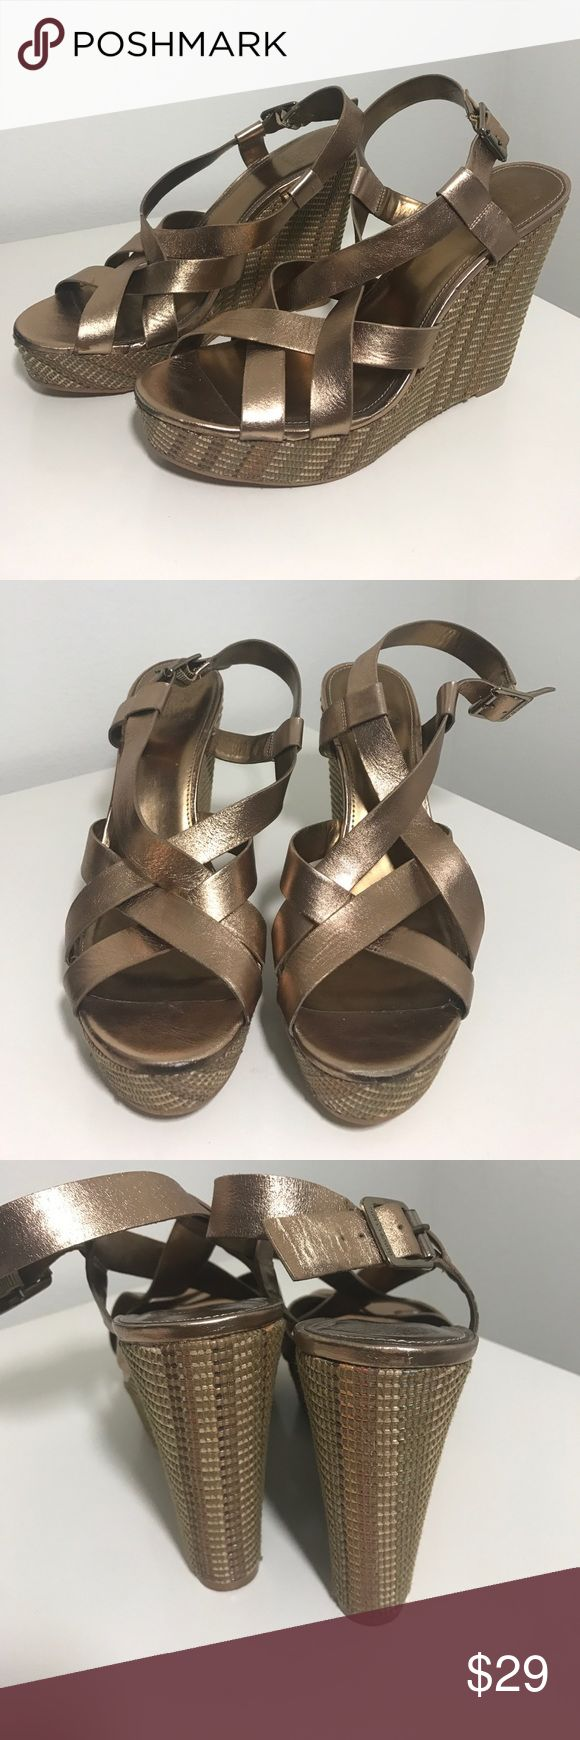 Vince Camuto wedge Upper metallic leather. Size 9. Normal wear and tear. Price firm unless bundled. 10570.23 Vince Camuto Shoes Wedges